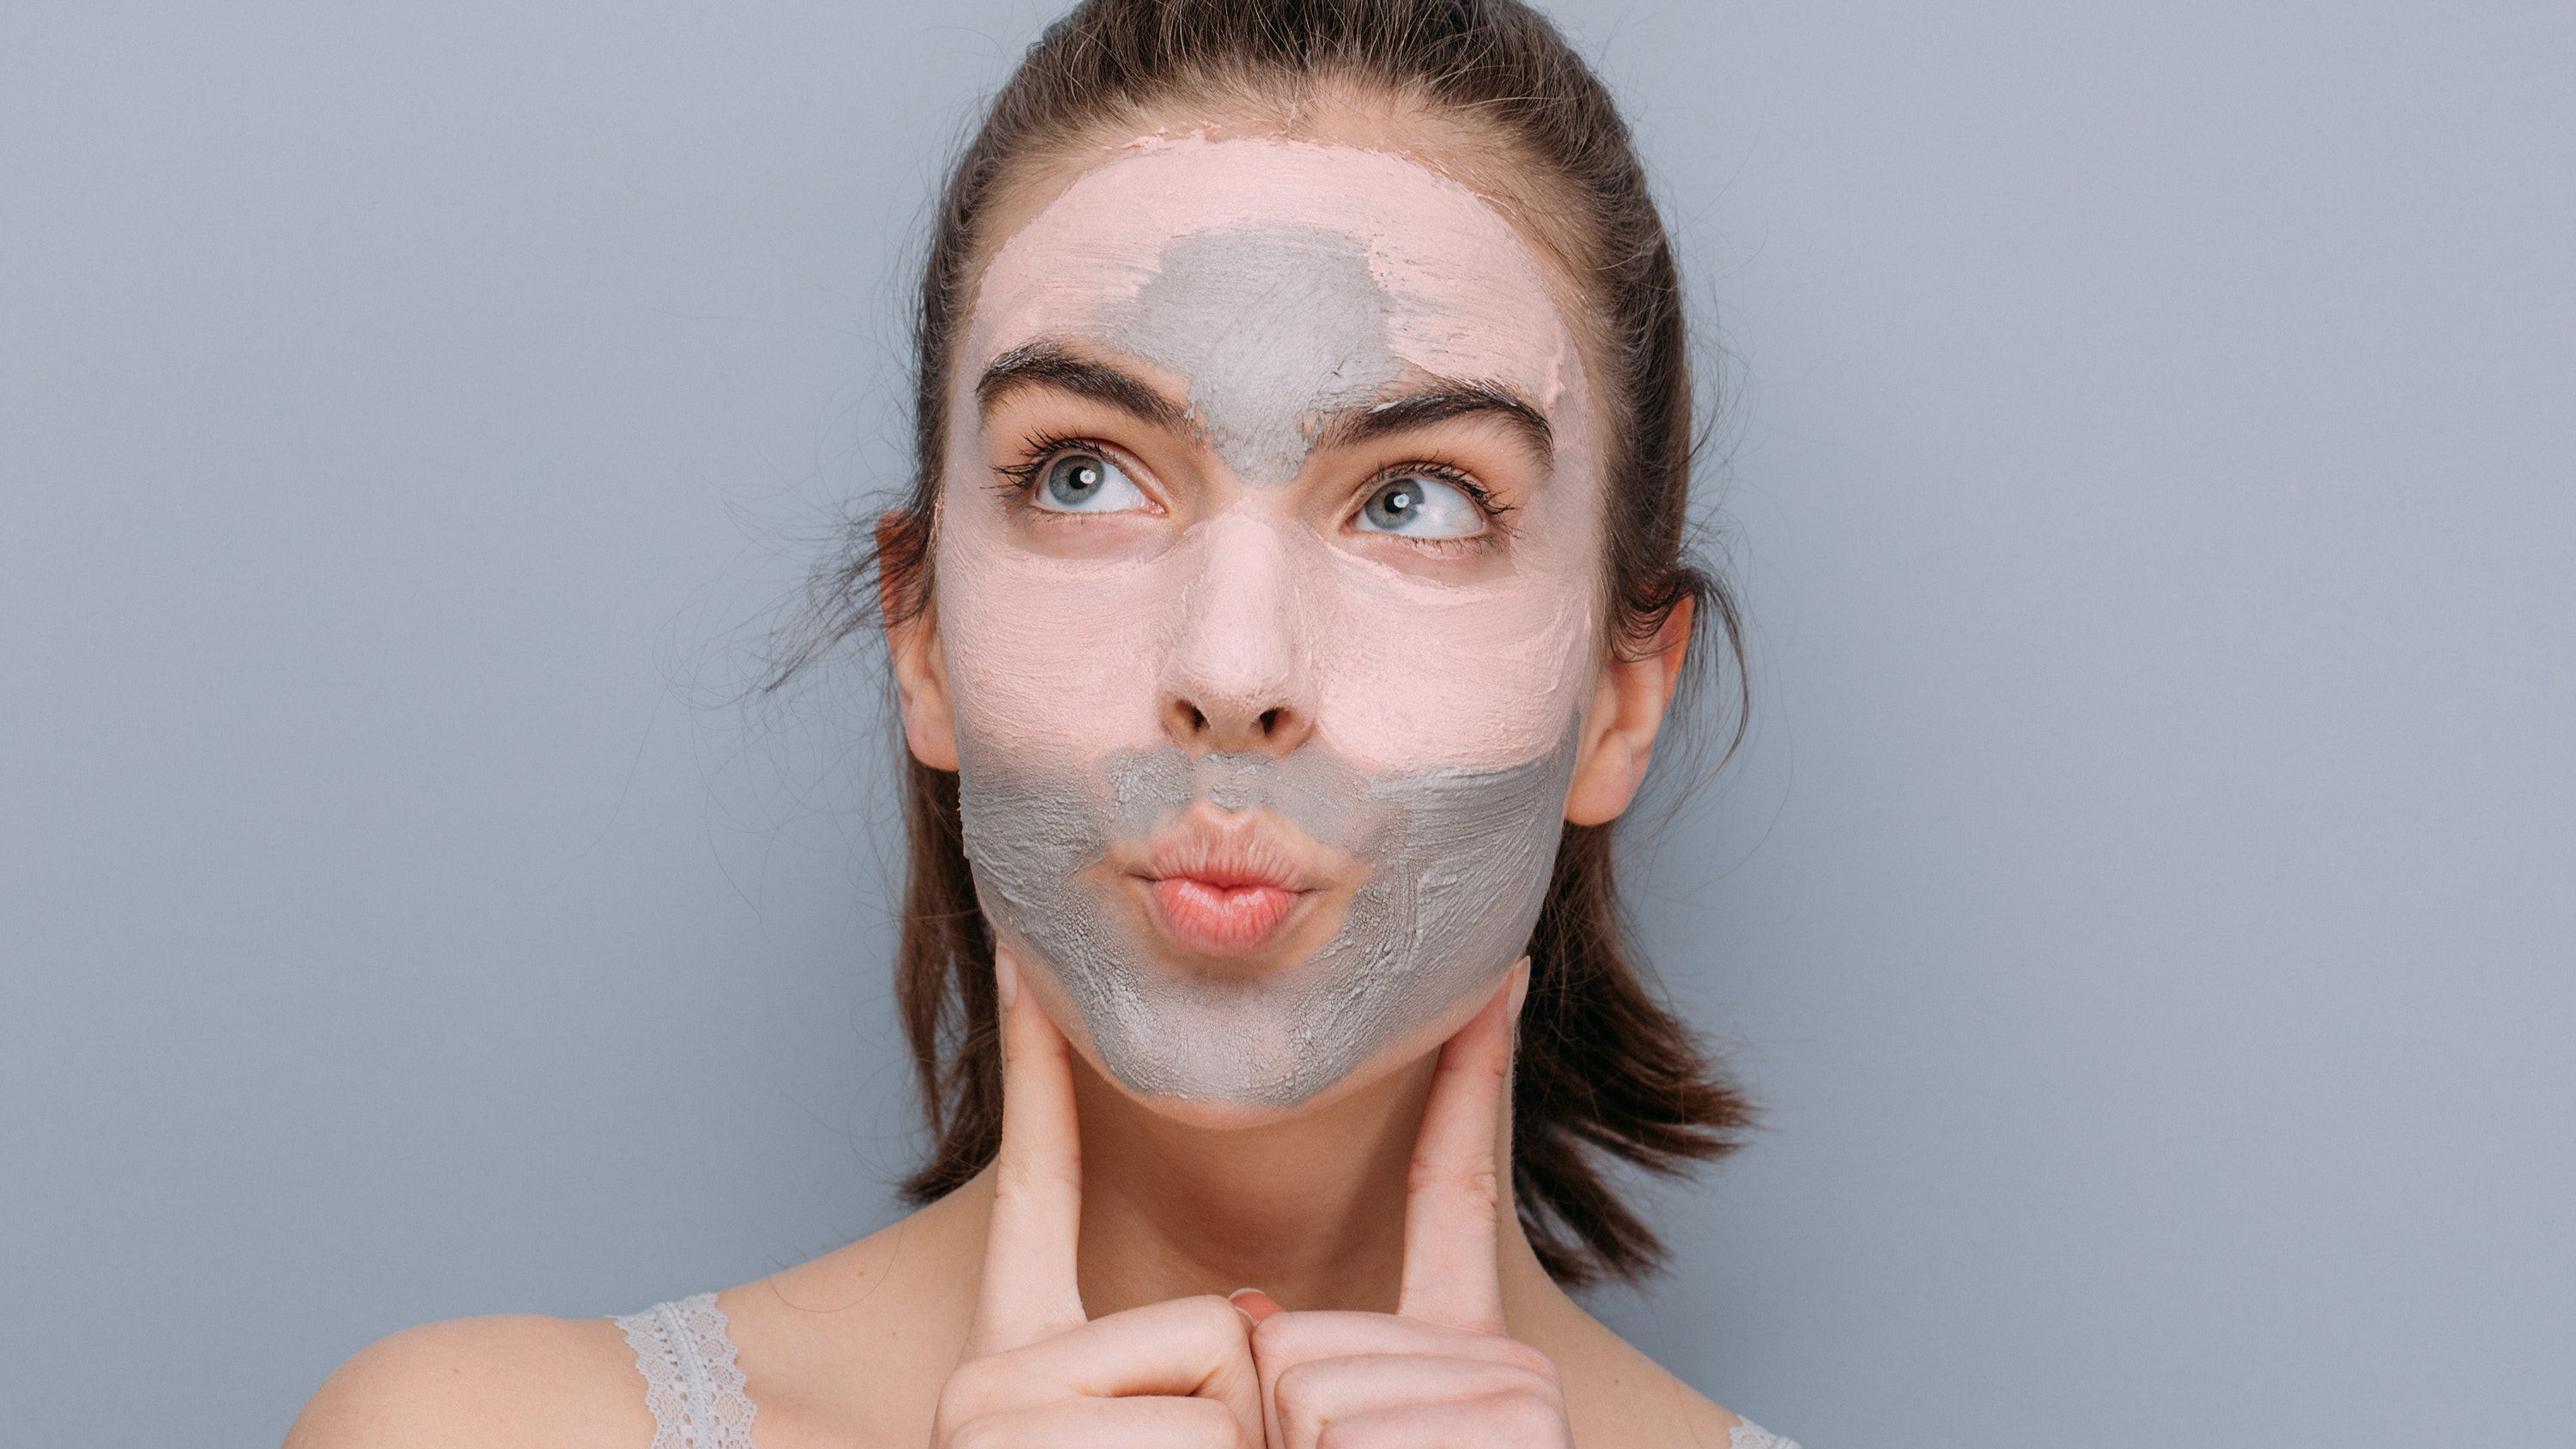 face mask on woman's face